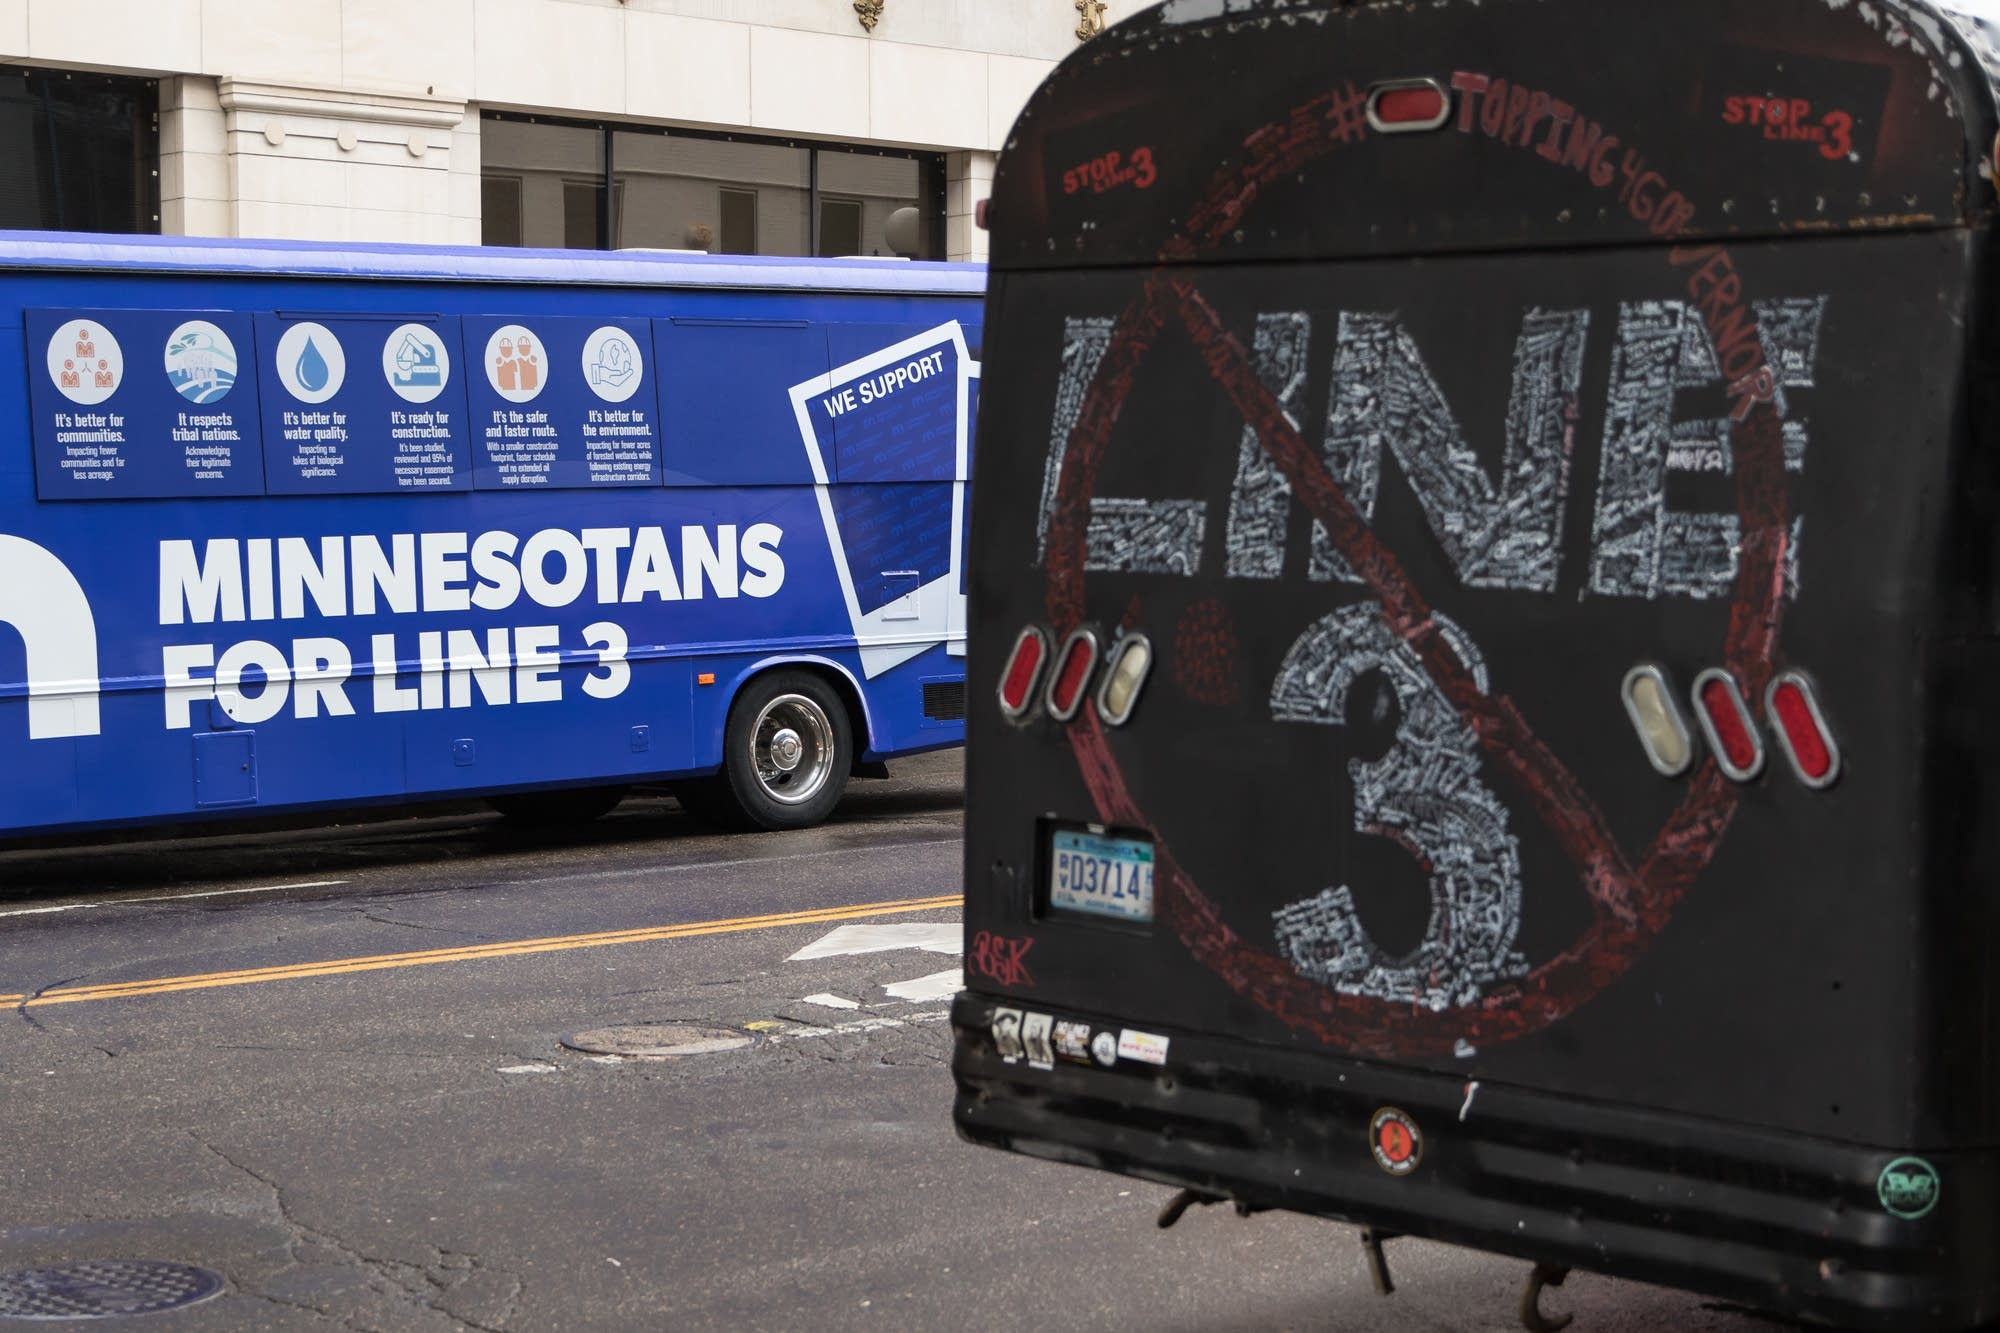 Line three proponents and opponents' buses sit across the street.